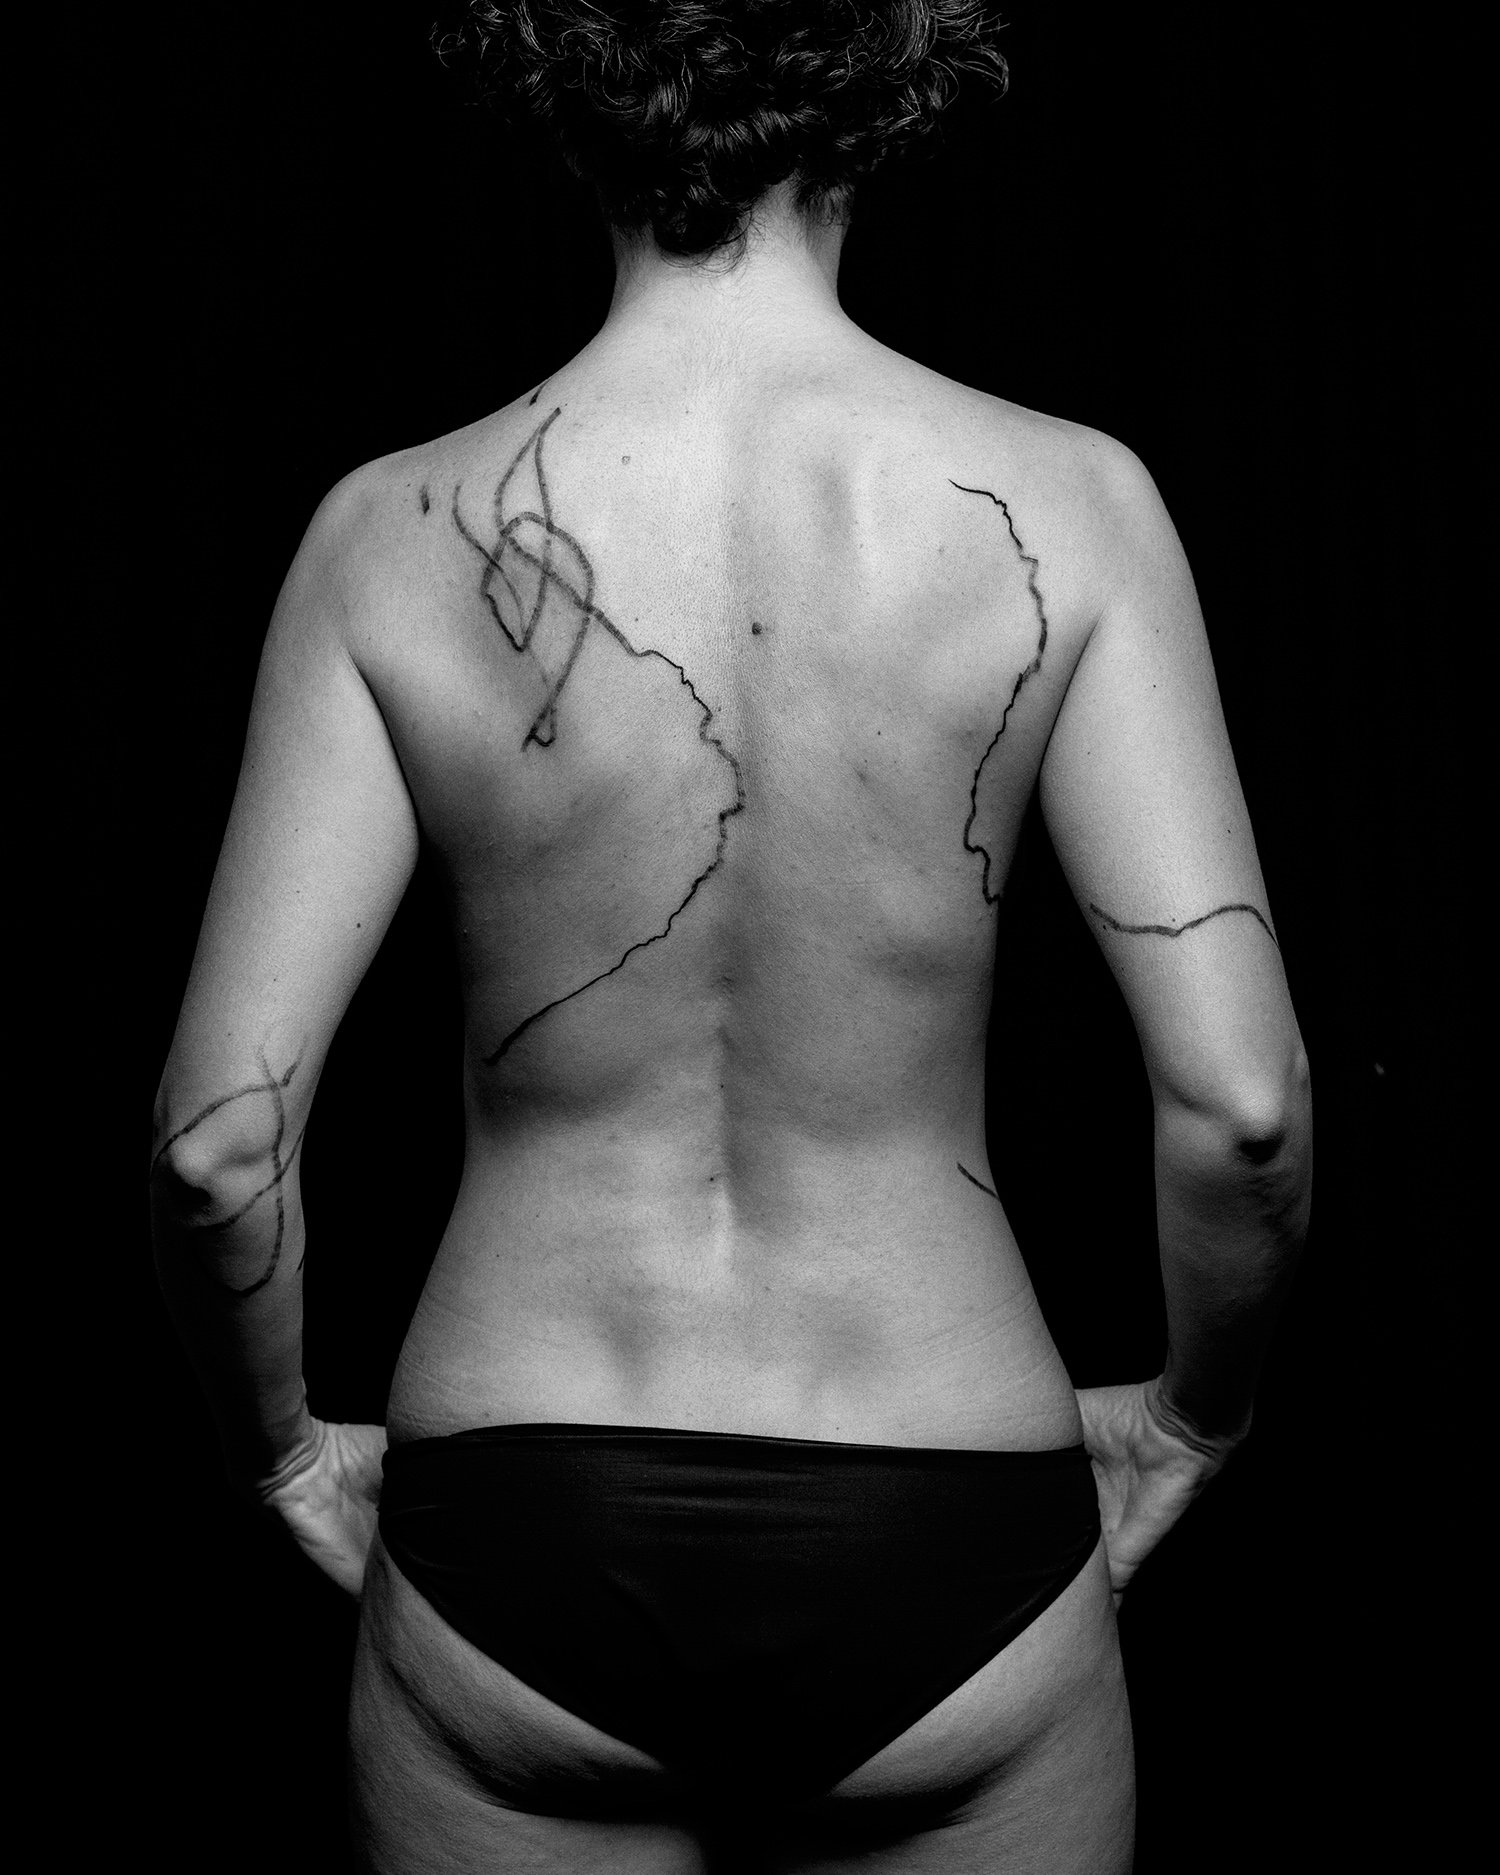 Marcela's back, flow of lines, abstract tattoos, black ink